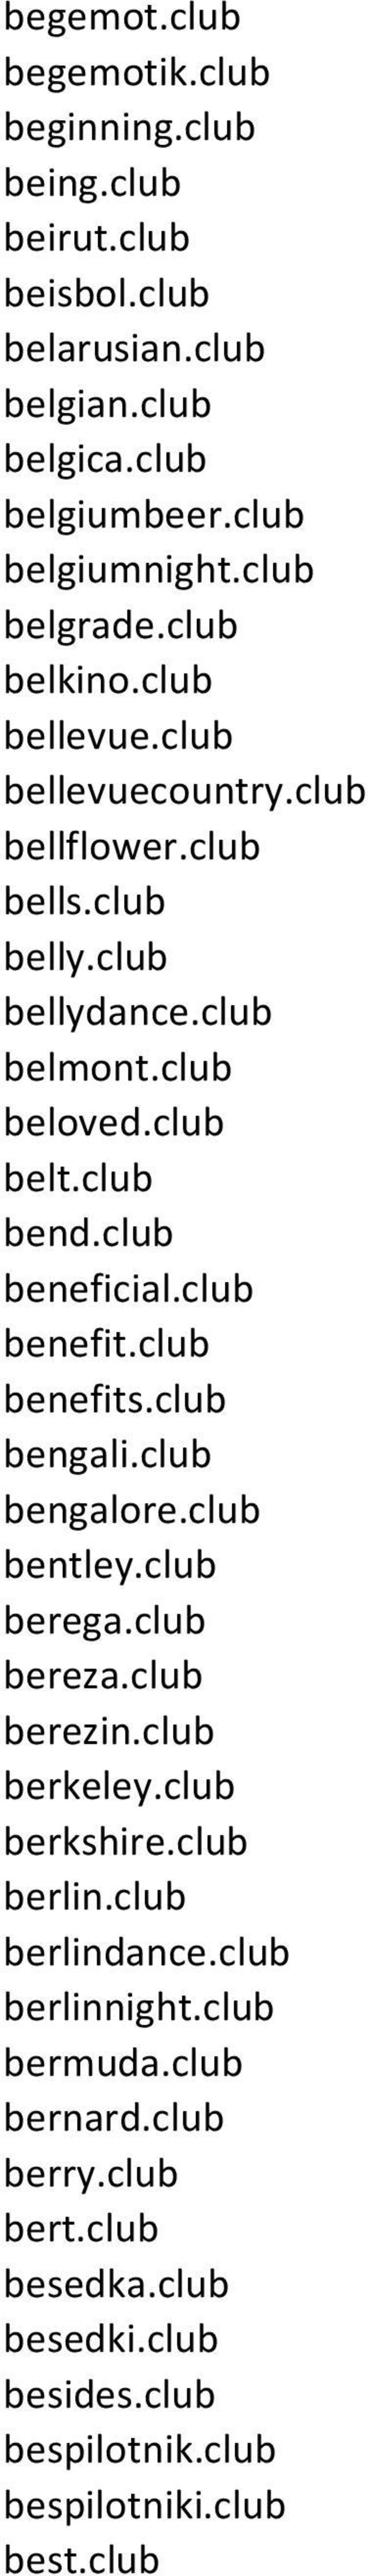 club bend.club beneficial.club benefit.club benefits.club bengali.club bengalore.club bentley.club berega.club bereza.club berezin.club berkeley.club berkshire.